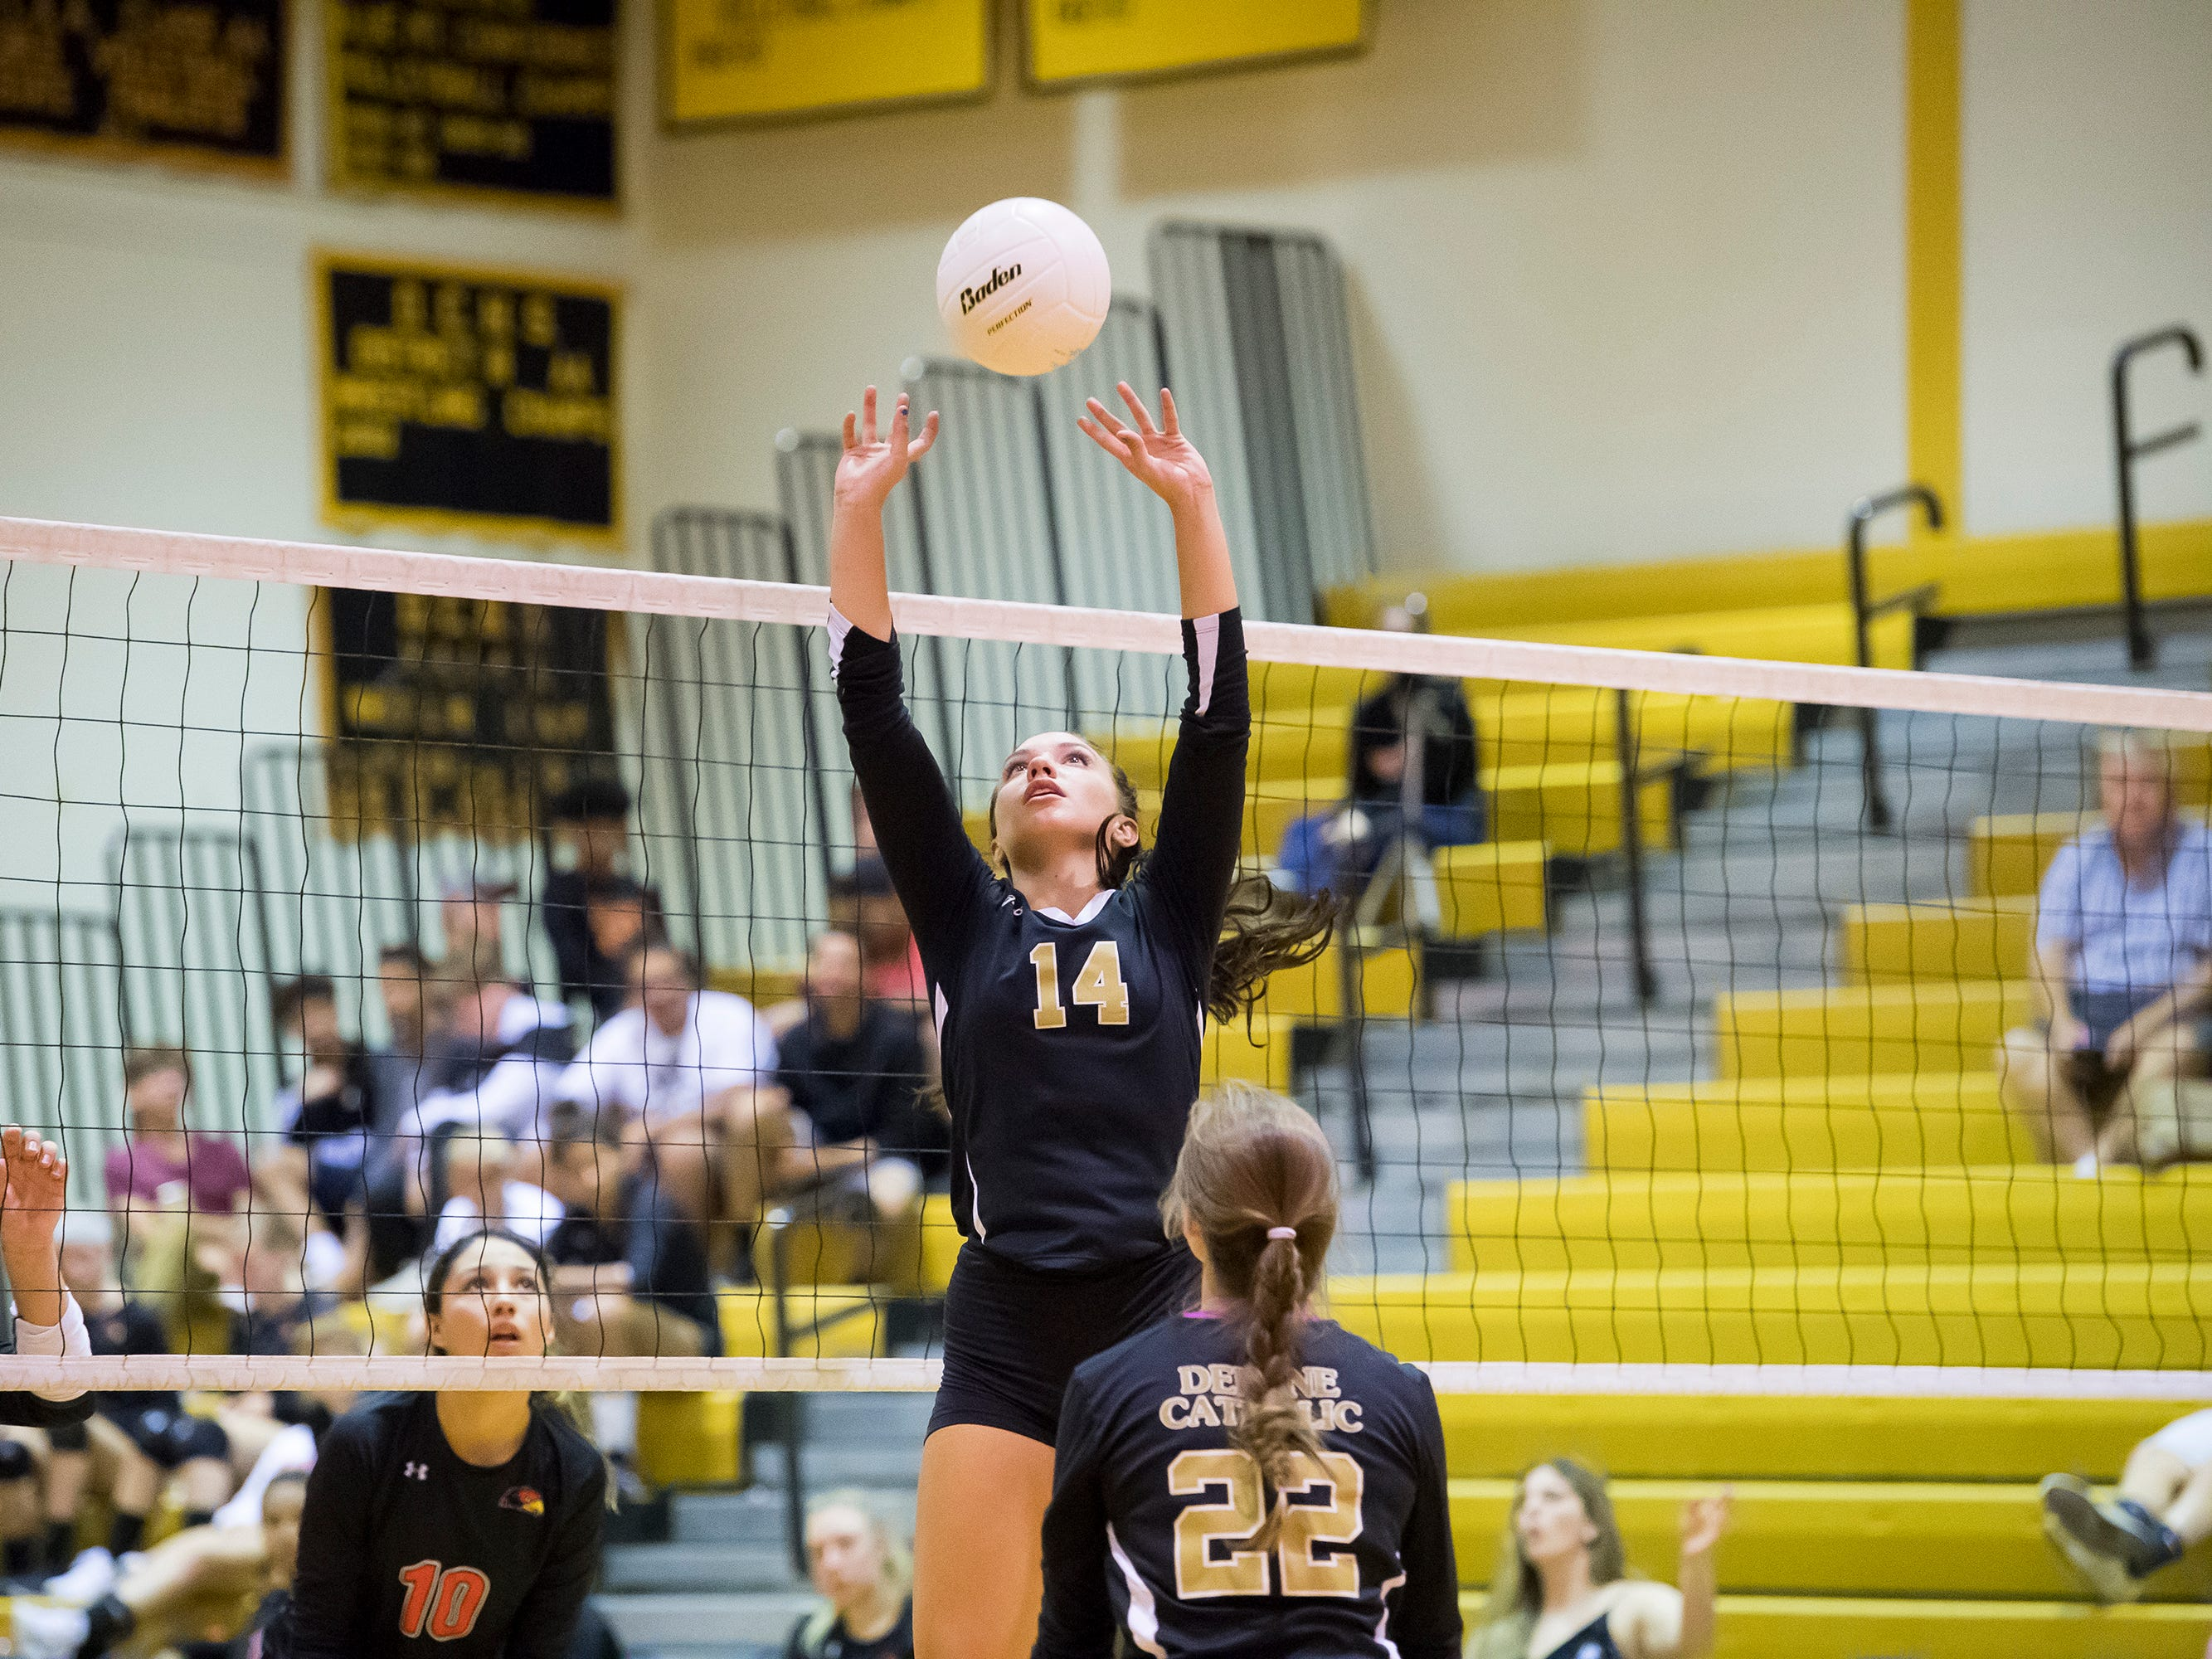 Delone Catholic's Molly Raville sets the ball for teammate Emily Miller (22) during play against Hanover on Tuesday, September 18, 2018. The Squirettes swept the Hawkettes 25-16, 25-19, 25-14.